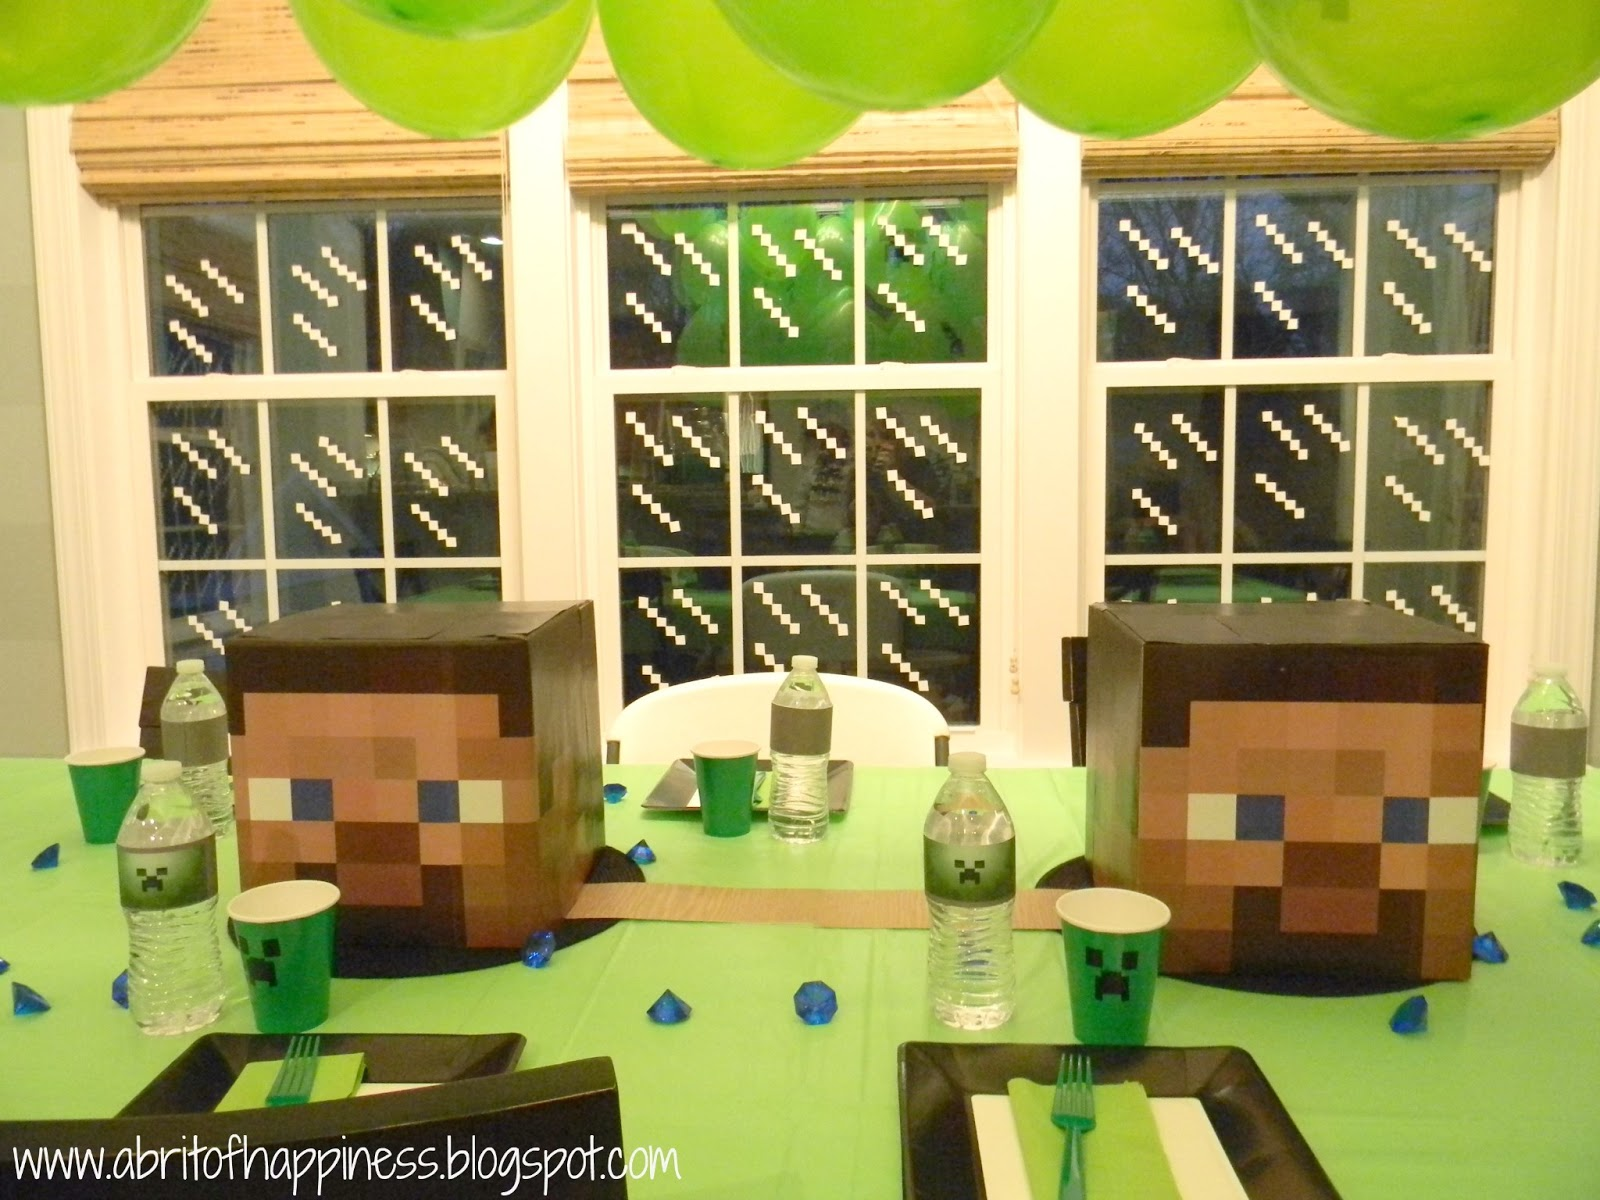 Seaside interiors a fun minecraft party - Minecraft head decoration ...